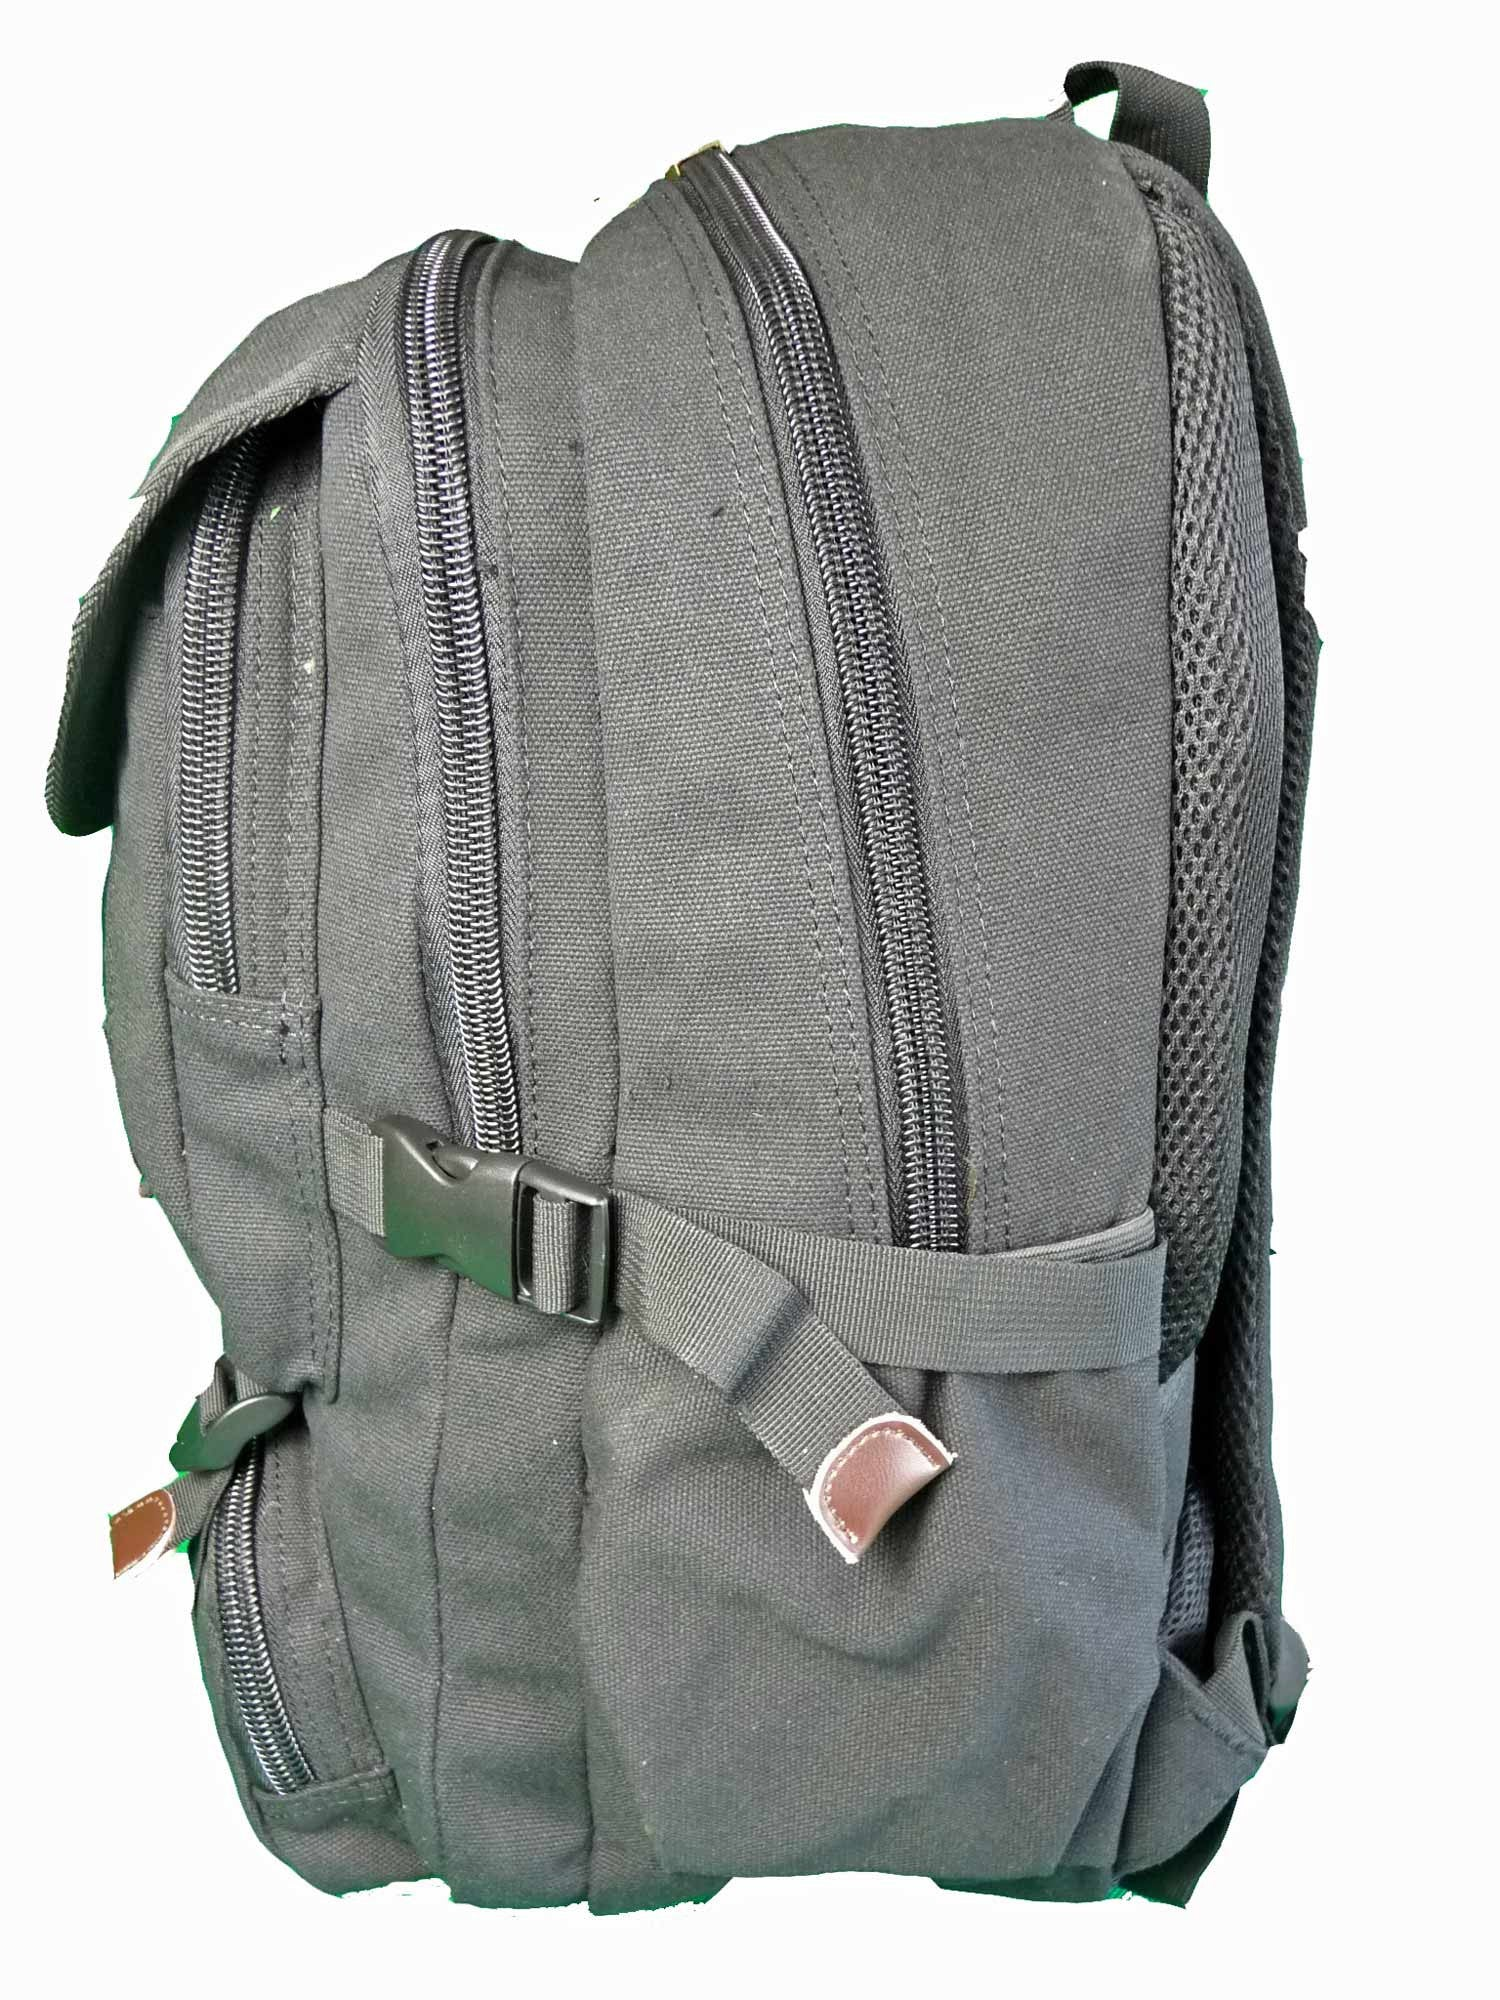 MacBook Air Backpack Rucksack Bag RL25K side side view